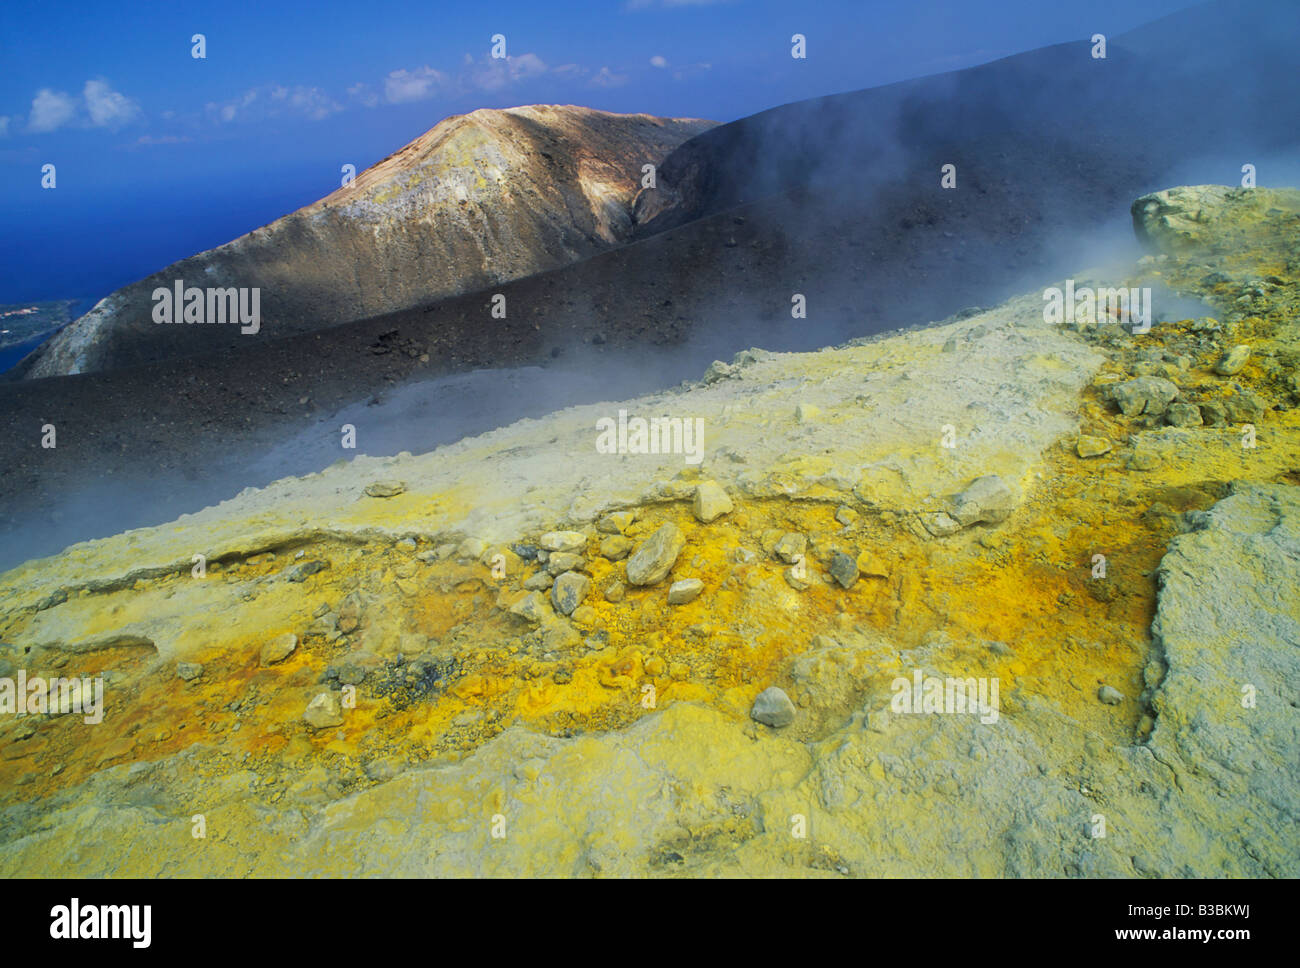 Steam vents with sulfur in crater, Vulcano, Vulcano Island, Aeolian Islands, Sicily, Italy - Stock Image